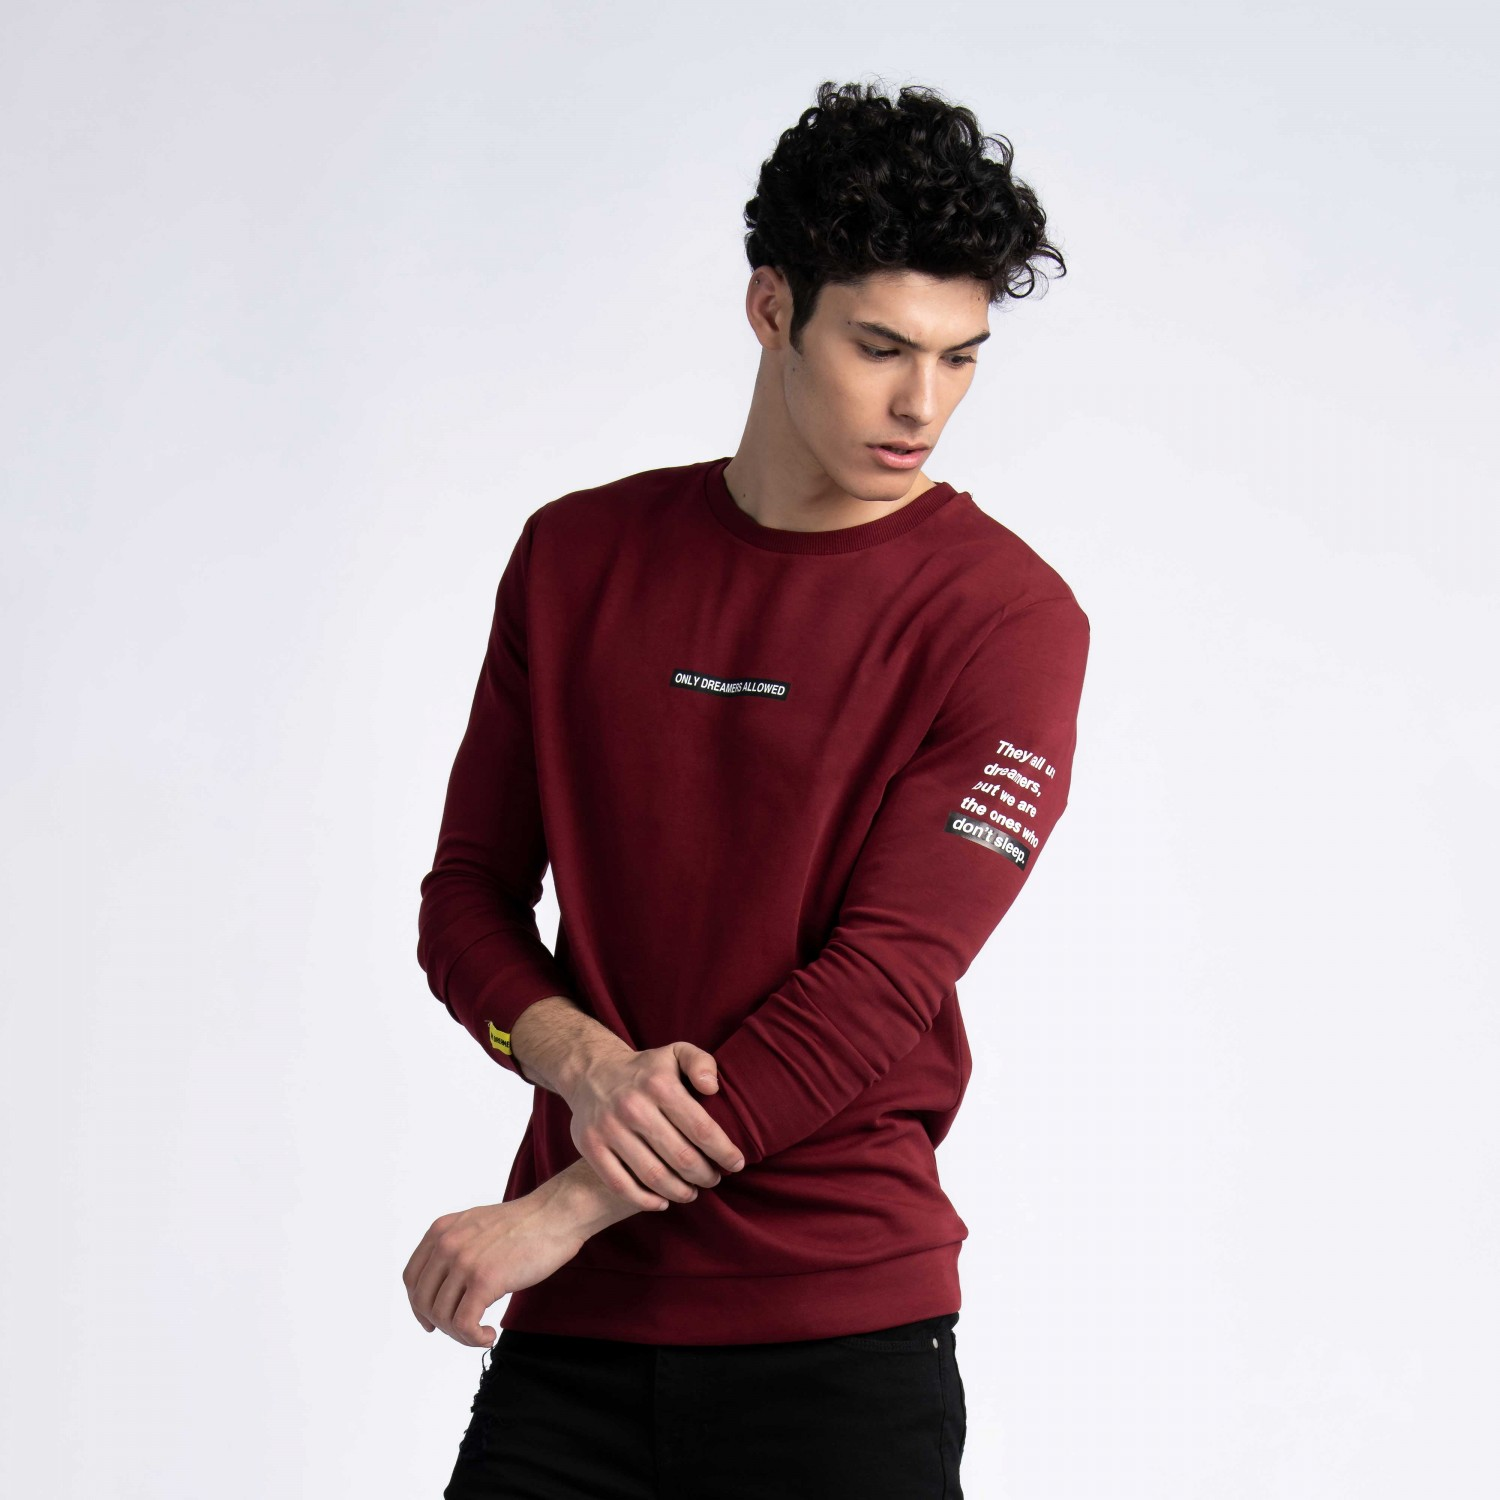 """They Call Us Dreamers"" Sweatshirt In Burgundy Cotton"